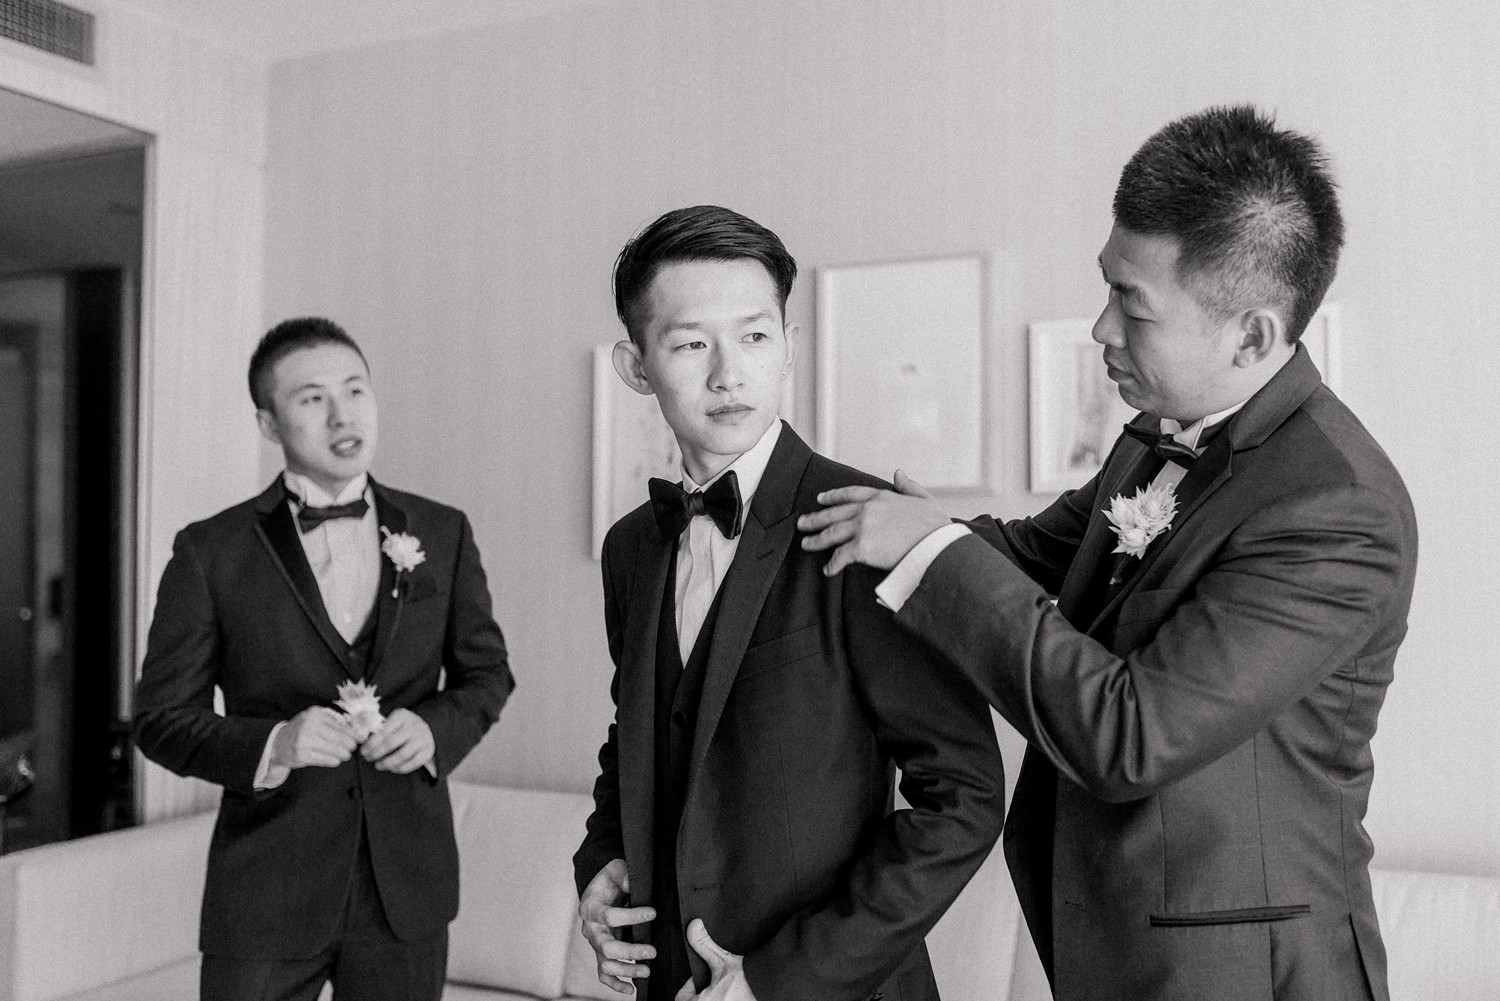 Groom Portraits Luxury Yorkville Vinci Toronto Four Season Hotel Wedding Photos with Chinese Bride and Groom